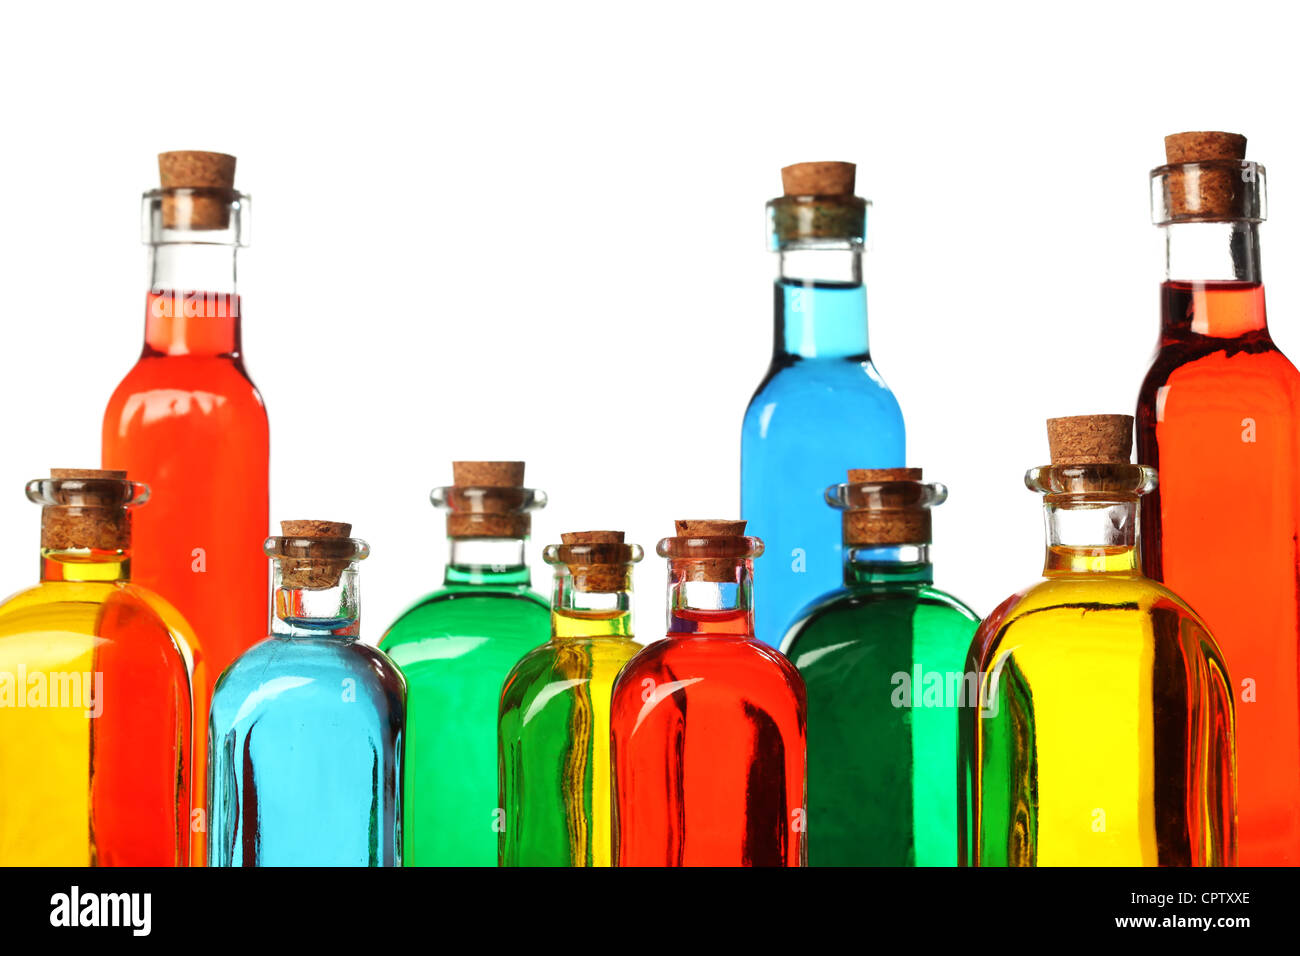 Colorful glass bottles - Stock Image